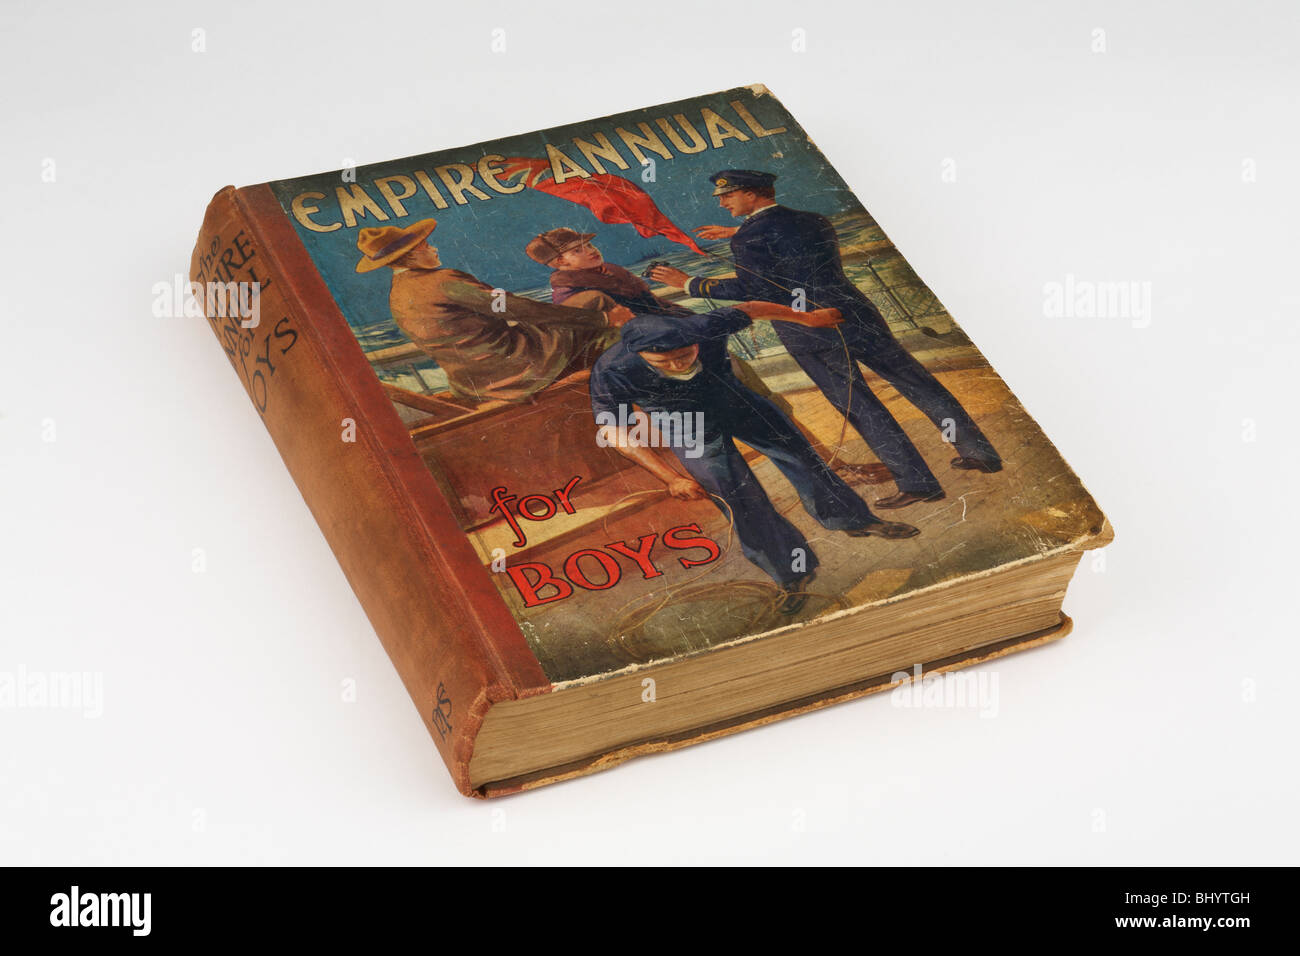 Old Book Empire Annual for Boys 1925 - Stock Image